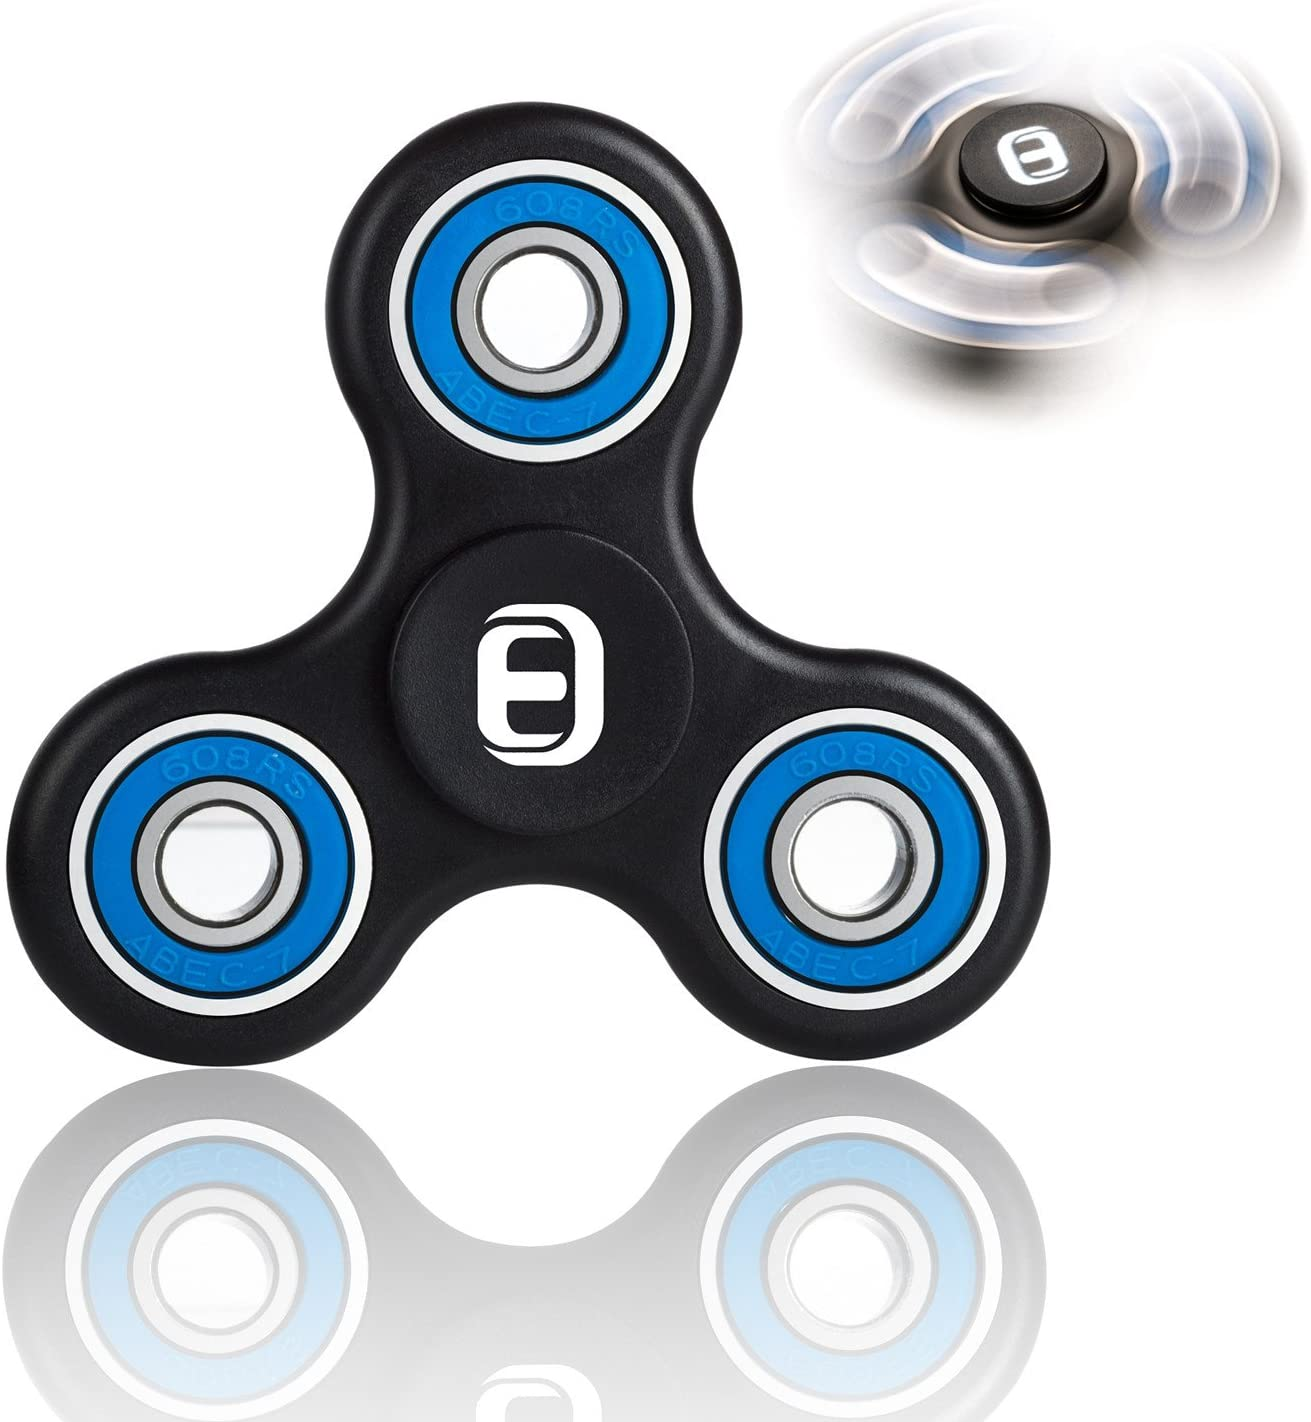 ADHD Relieves Stress Autism And Anxiety And Relax for Children and Adults Oriental eLife Fidget Spinner Stress Relievers for ADD Tri-Spinner EDC Focus Toy Hand spinner ABS, Black /& Blue